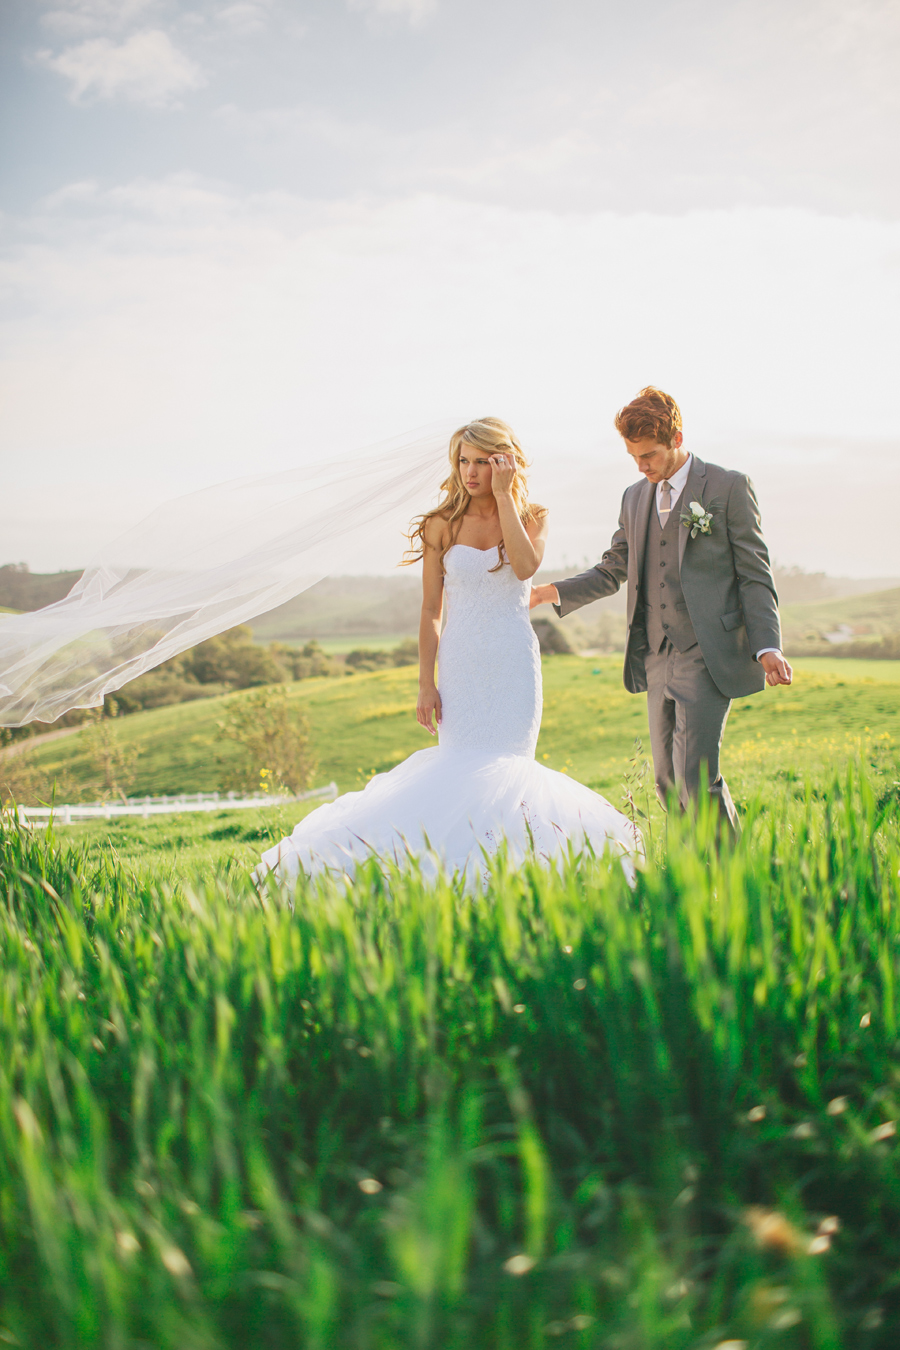 kelsea_holder_destination_wedding_photographer053